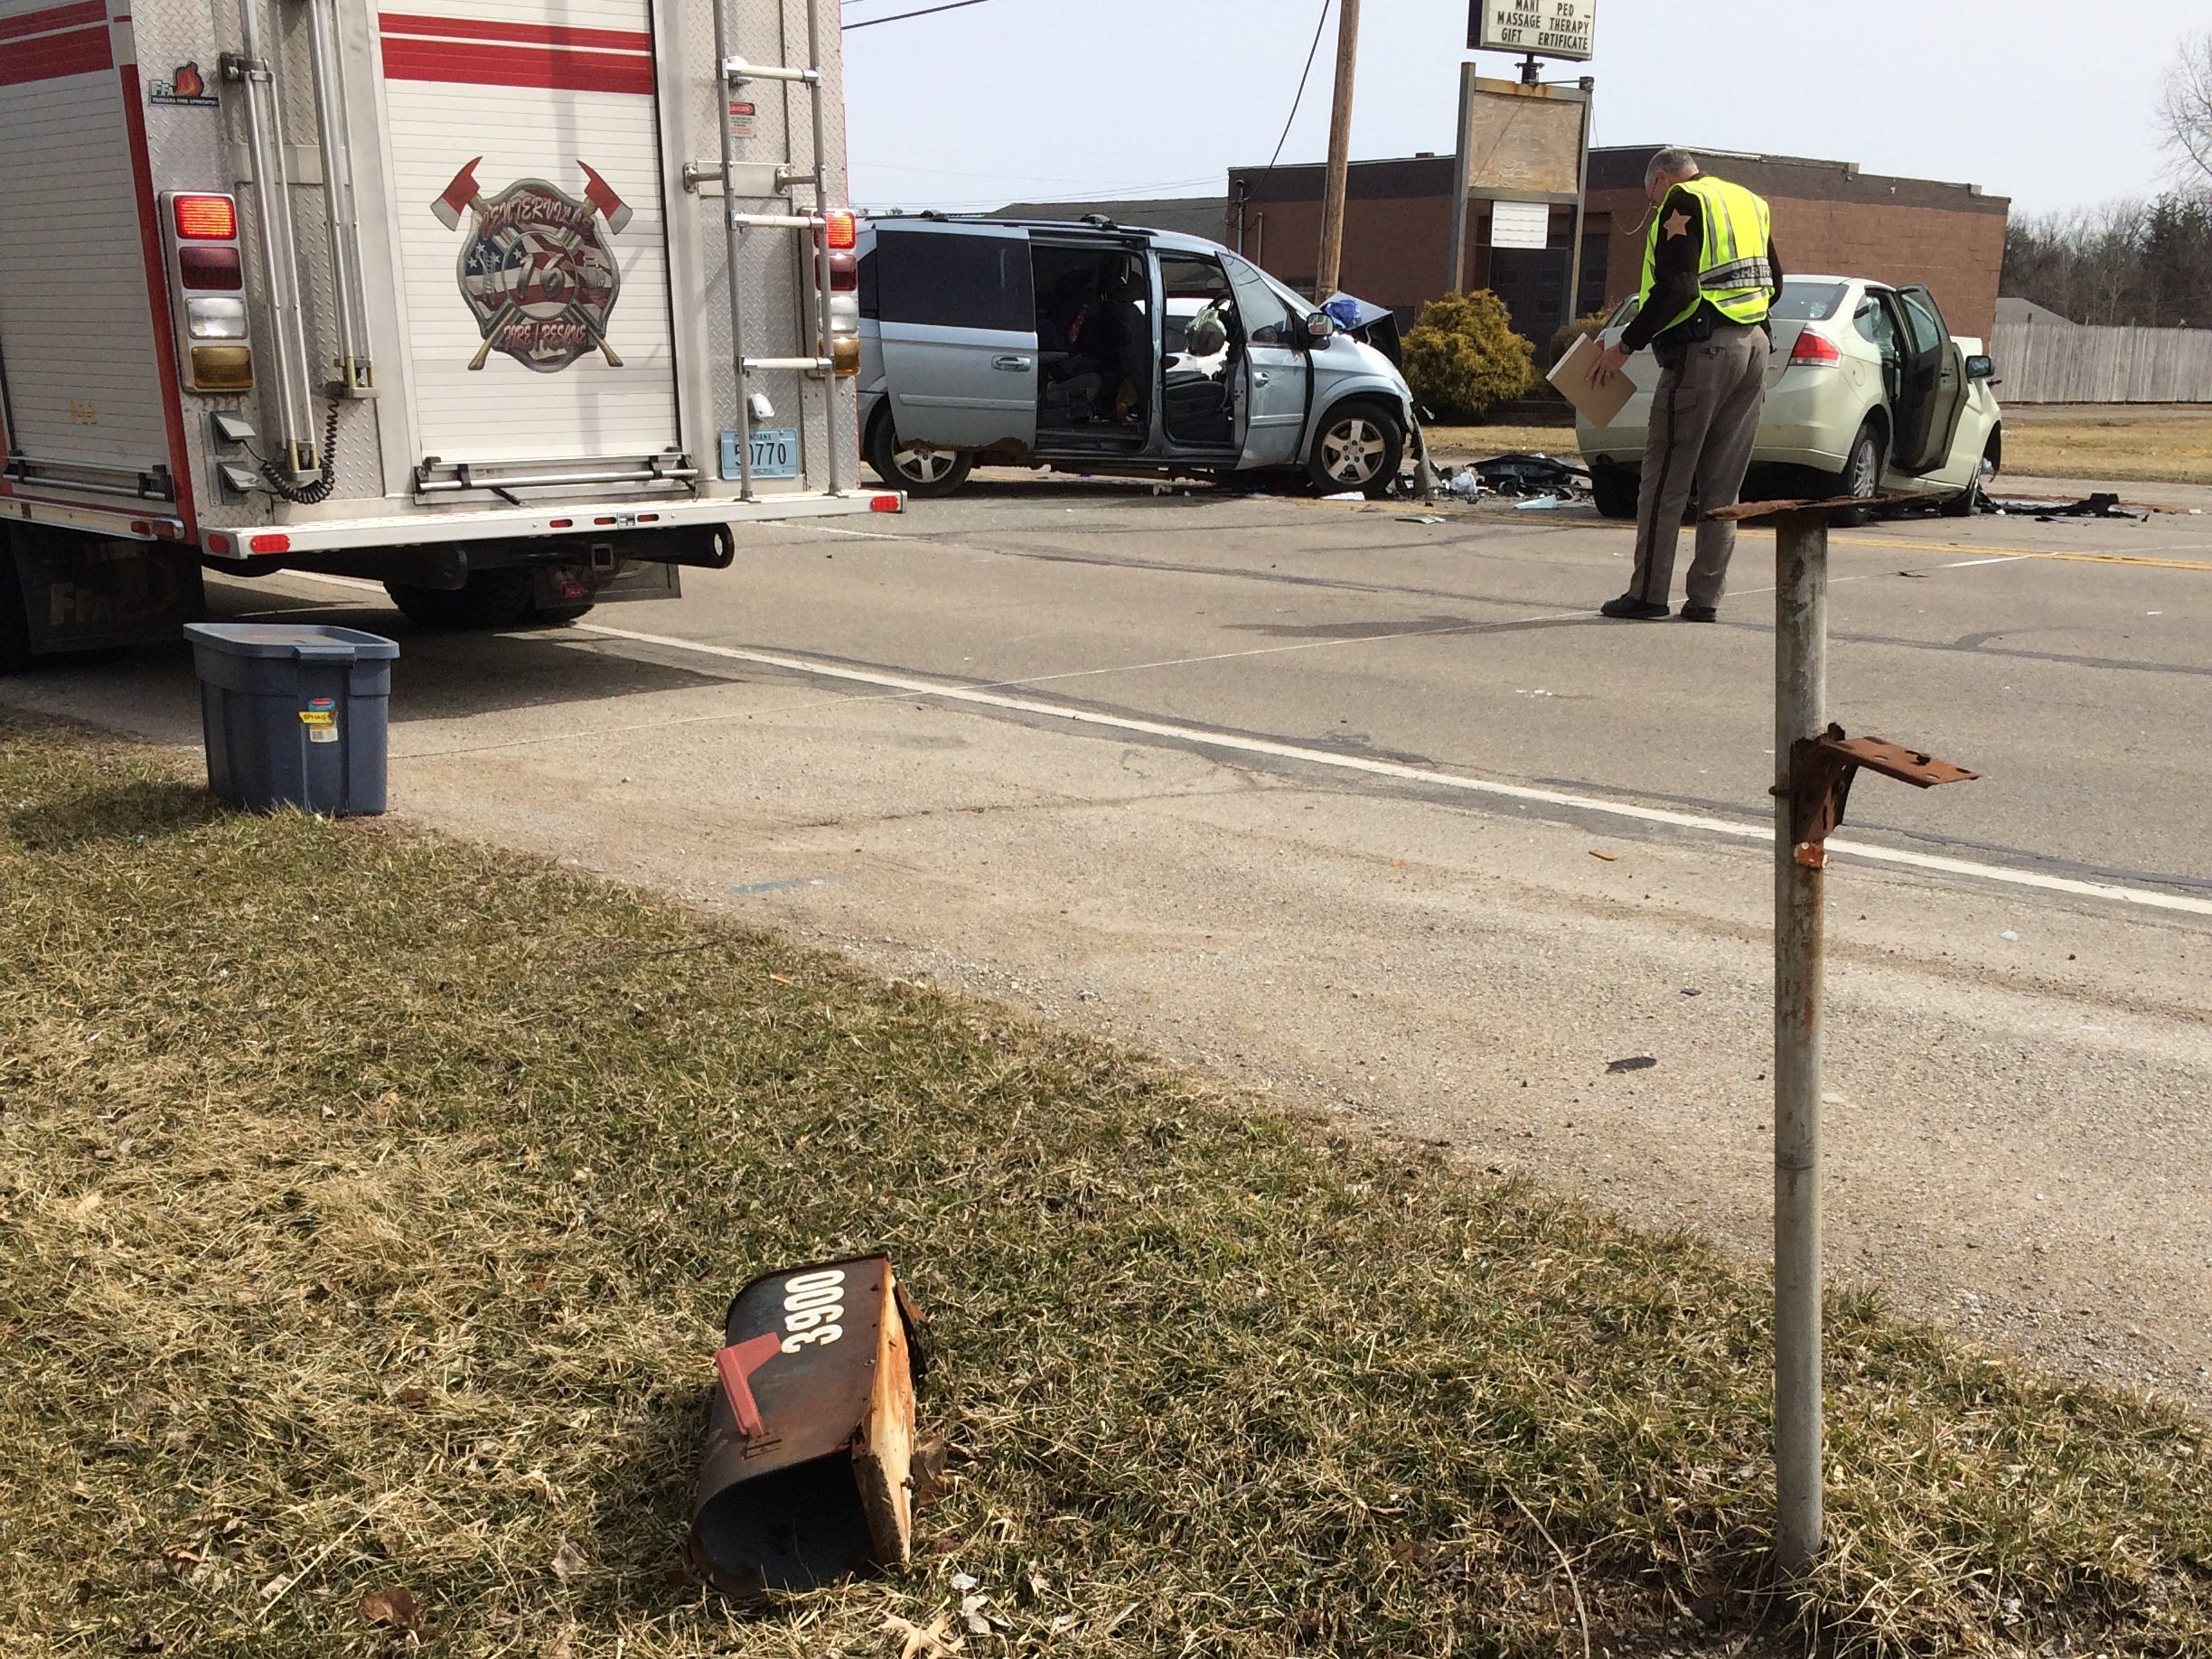 An accident occurred Tuesday afternoon in the 3900 block of National Road West.